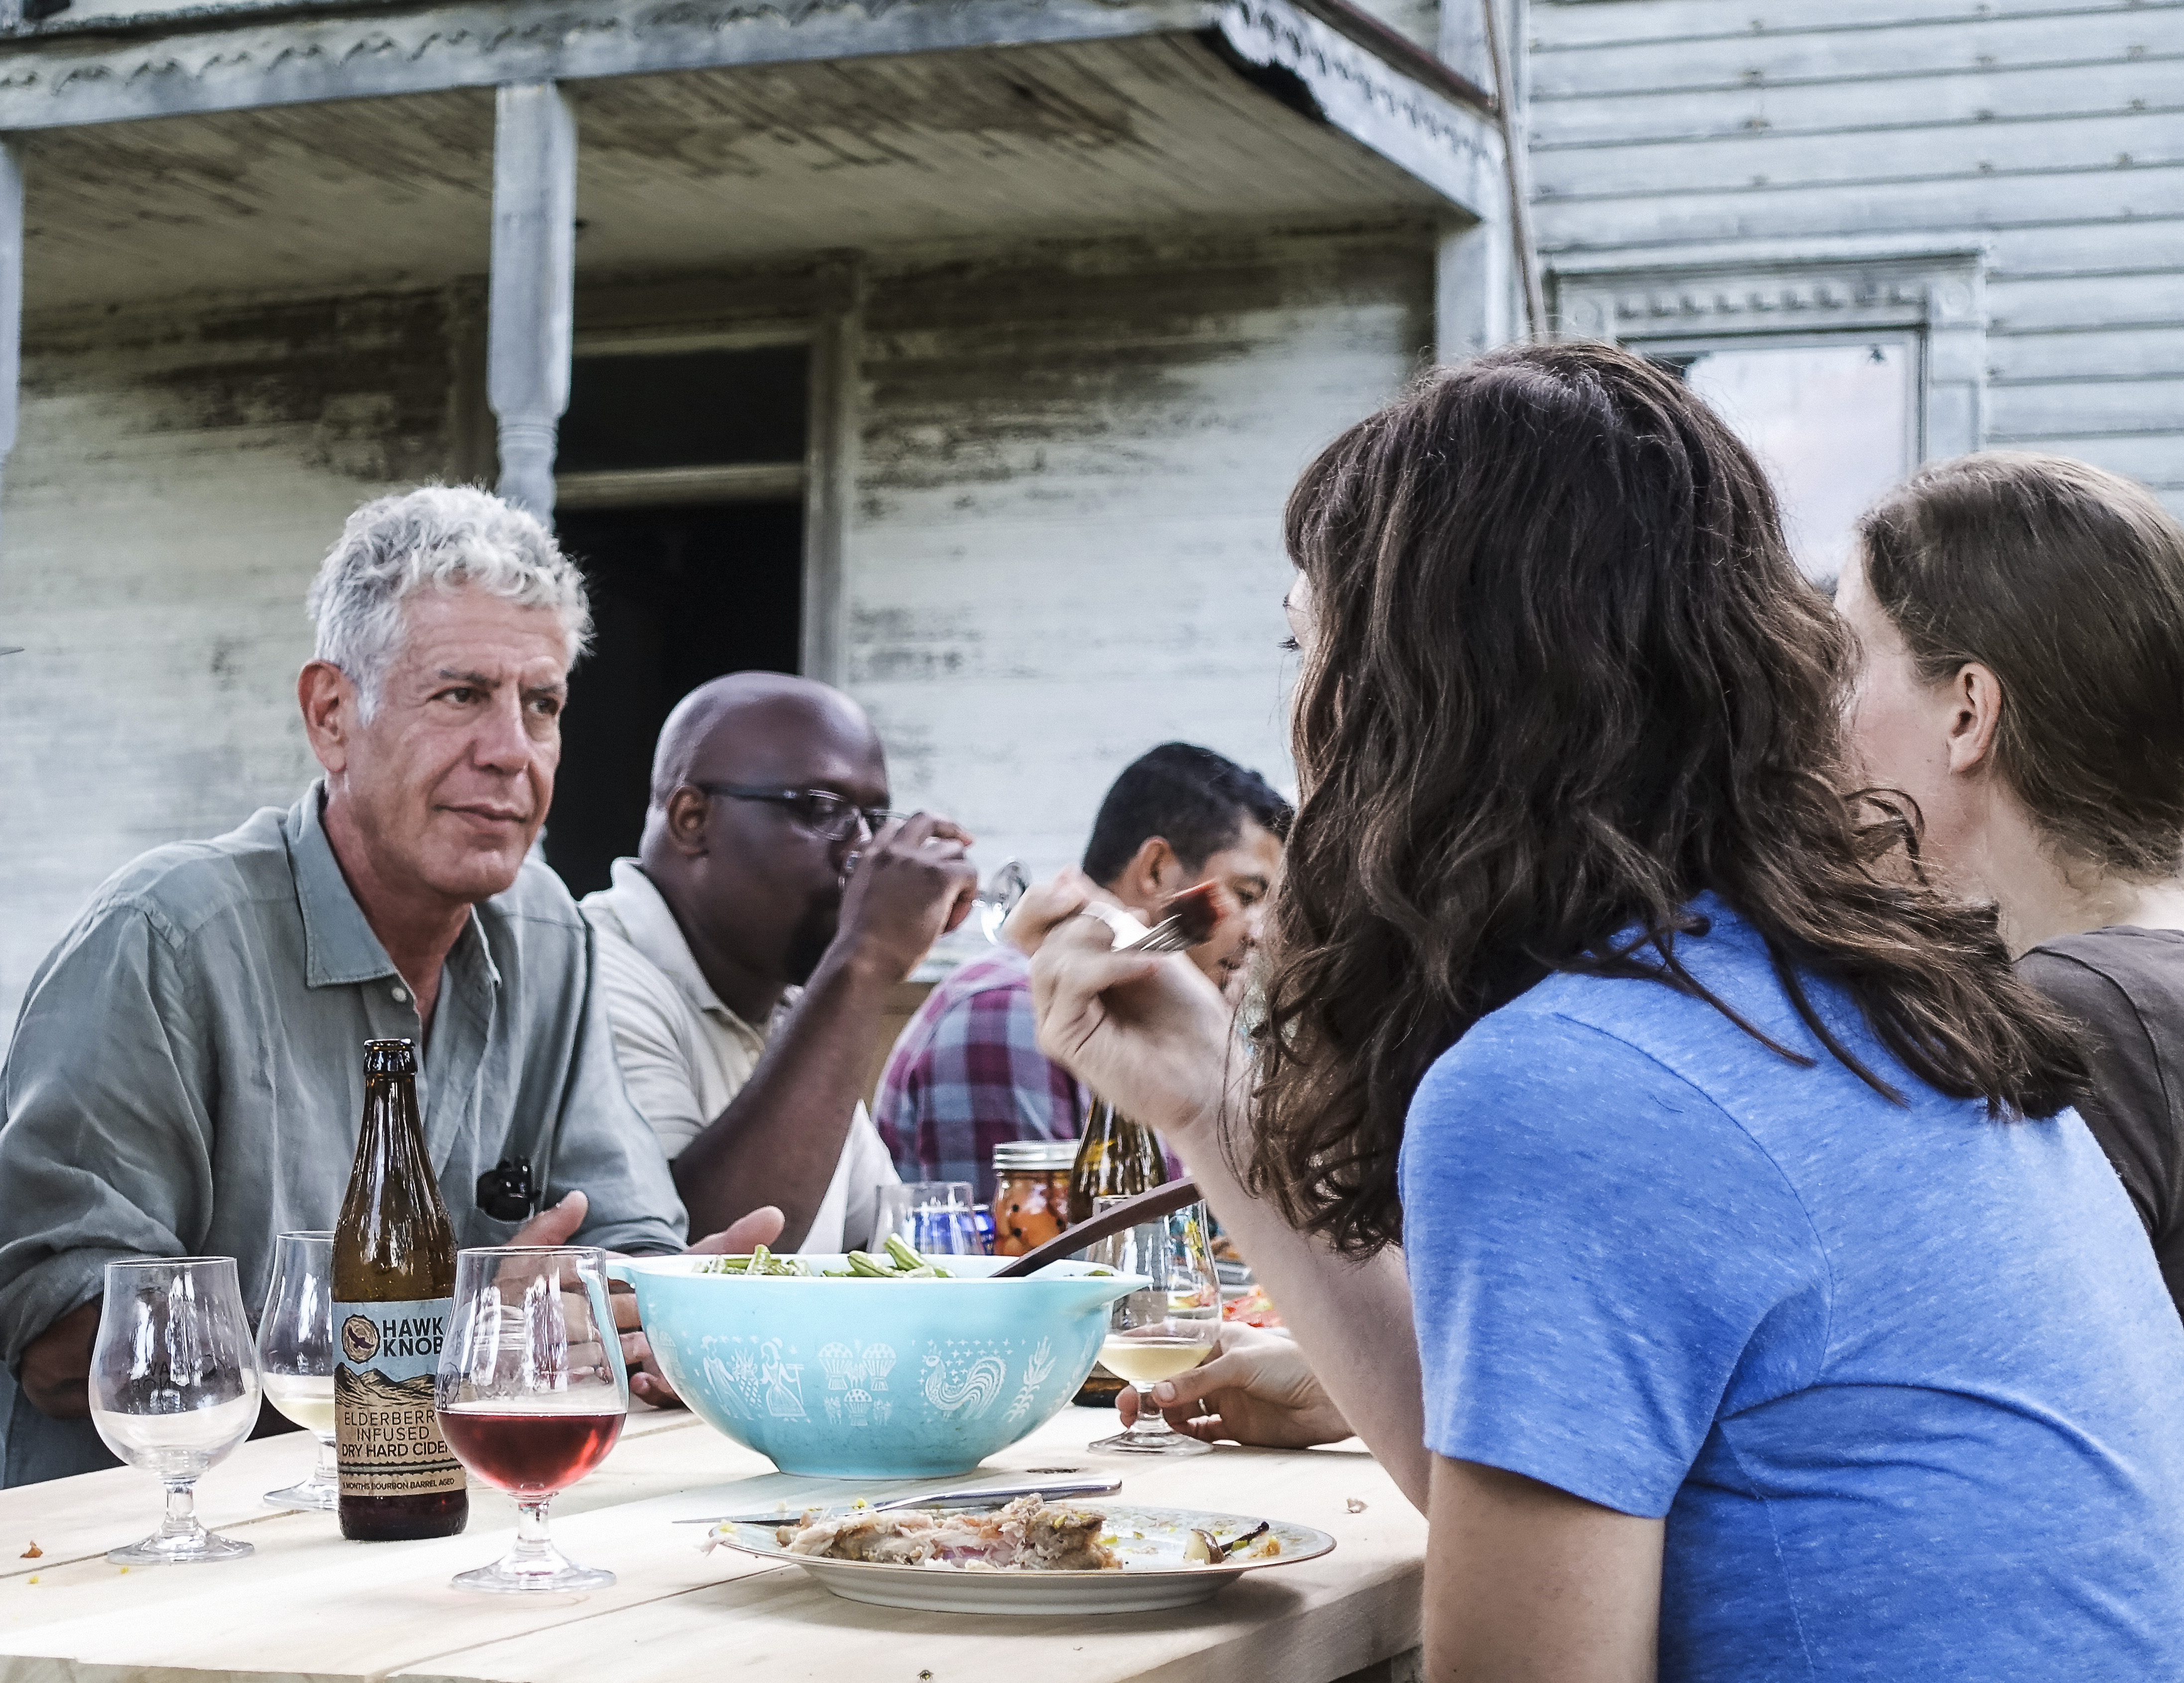 Anthony Bourdain sitting at an outdoor table in a scene from Parts Unknown: West Virginia.